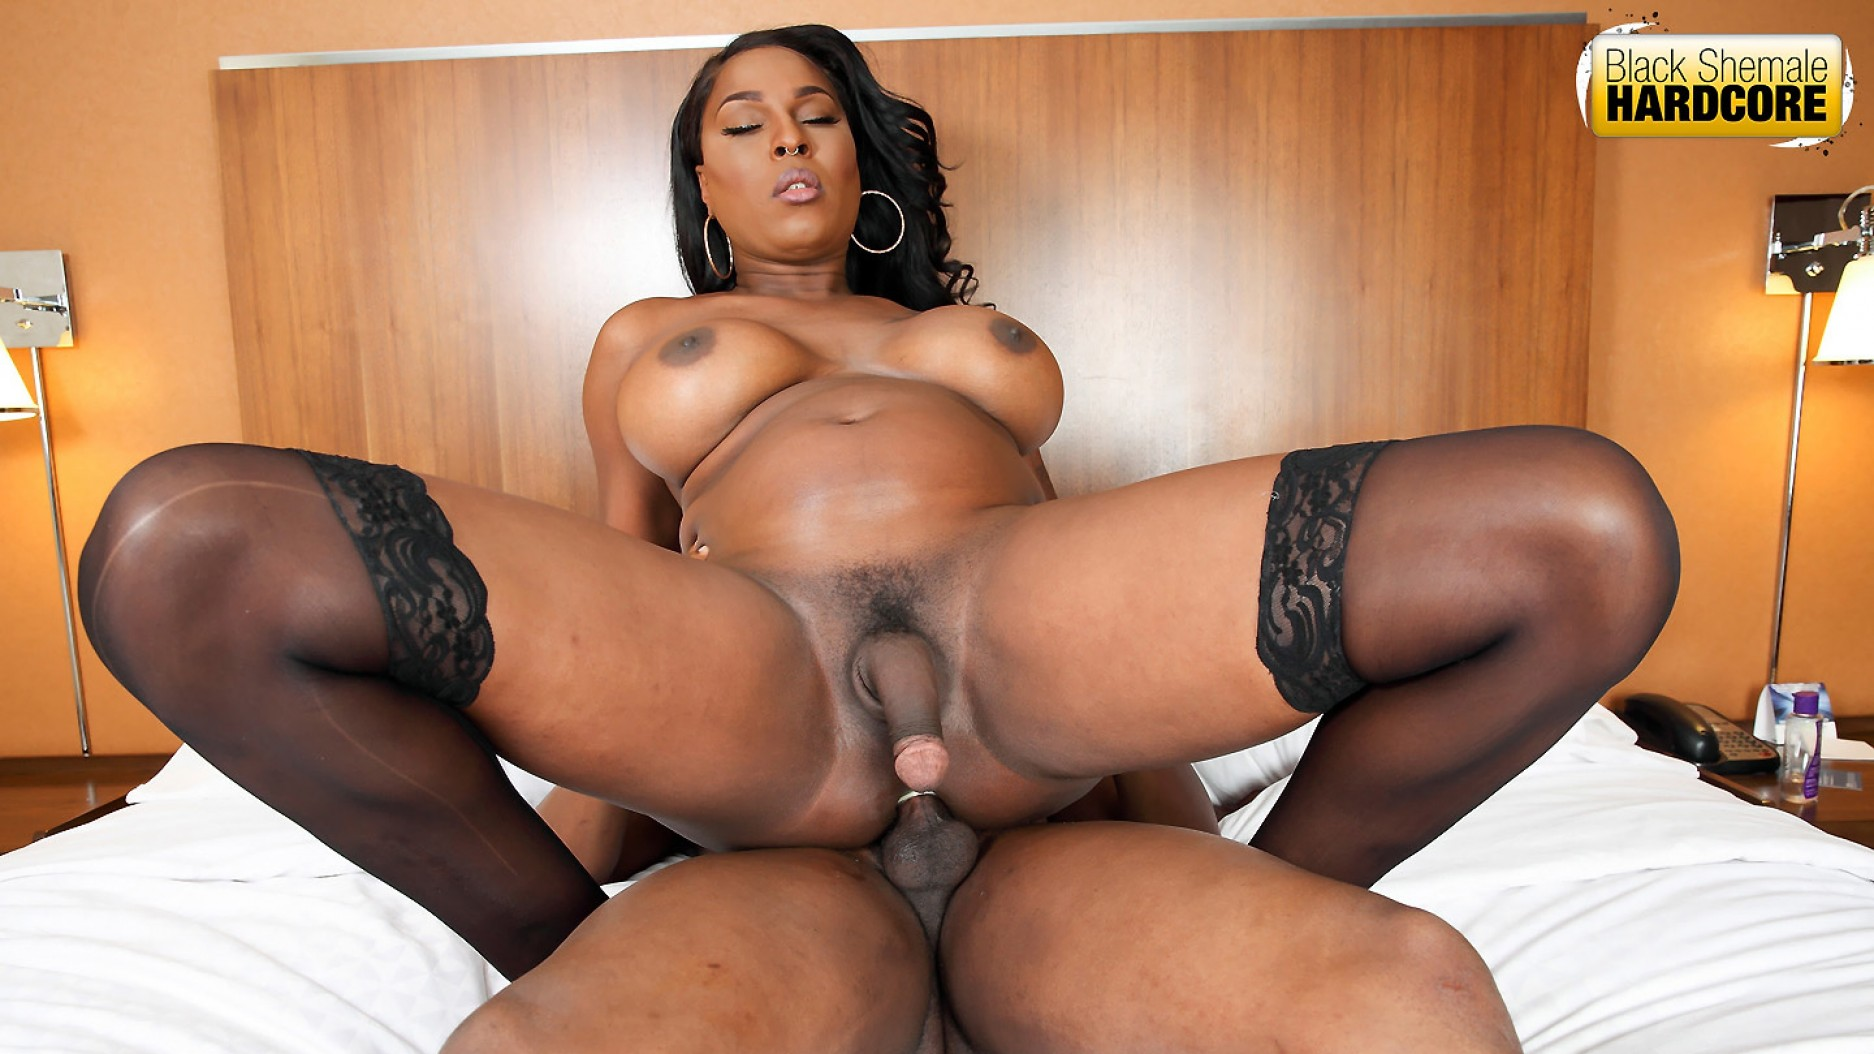 Just one FUCK EBONY XXX BIG ASS